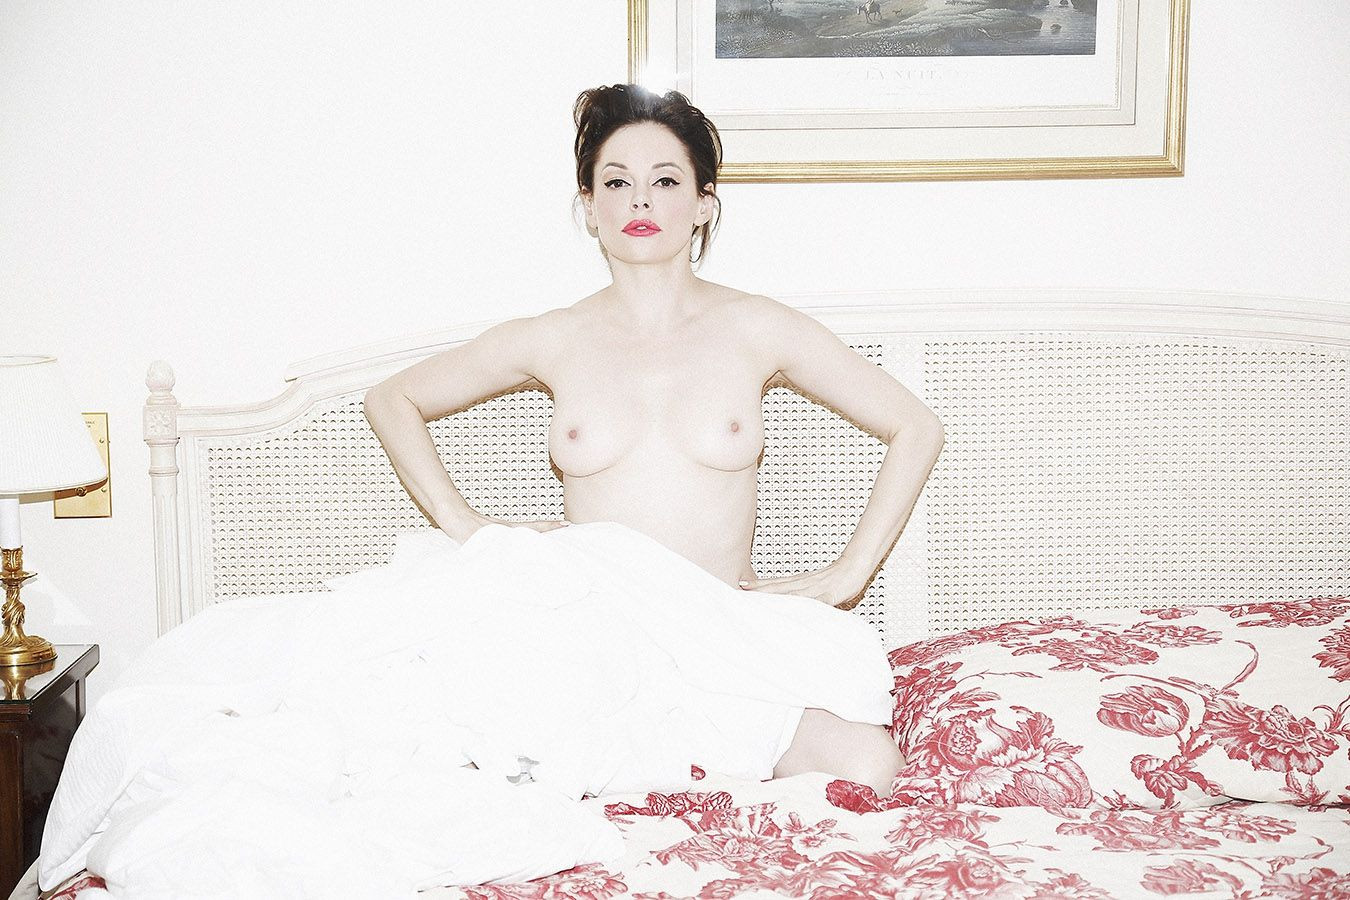 Rose McGowan Nude Leaked thefappening.nu 49